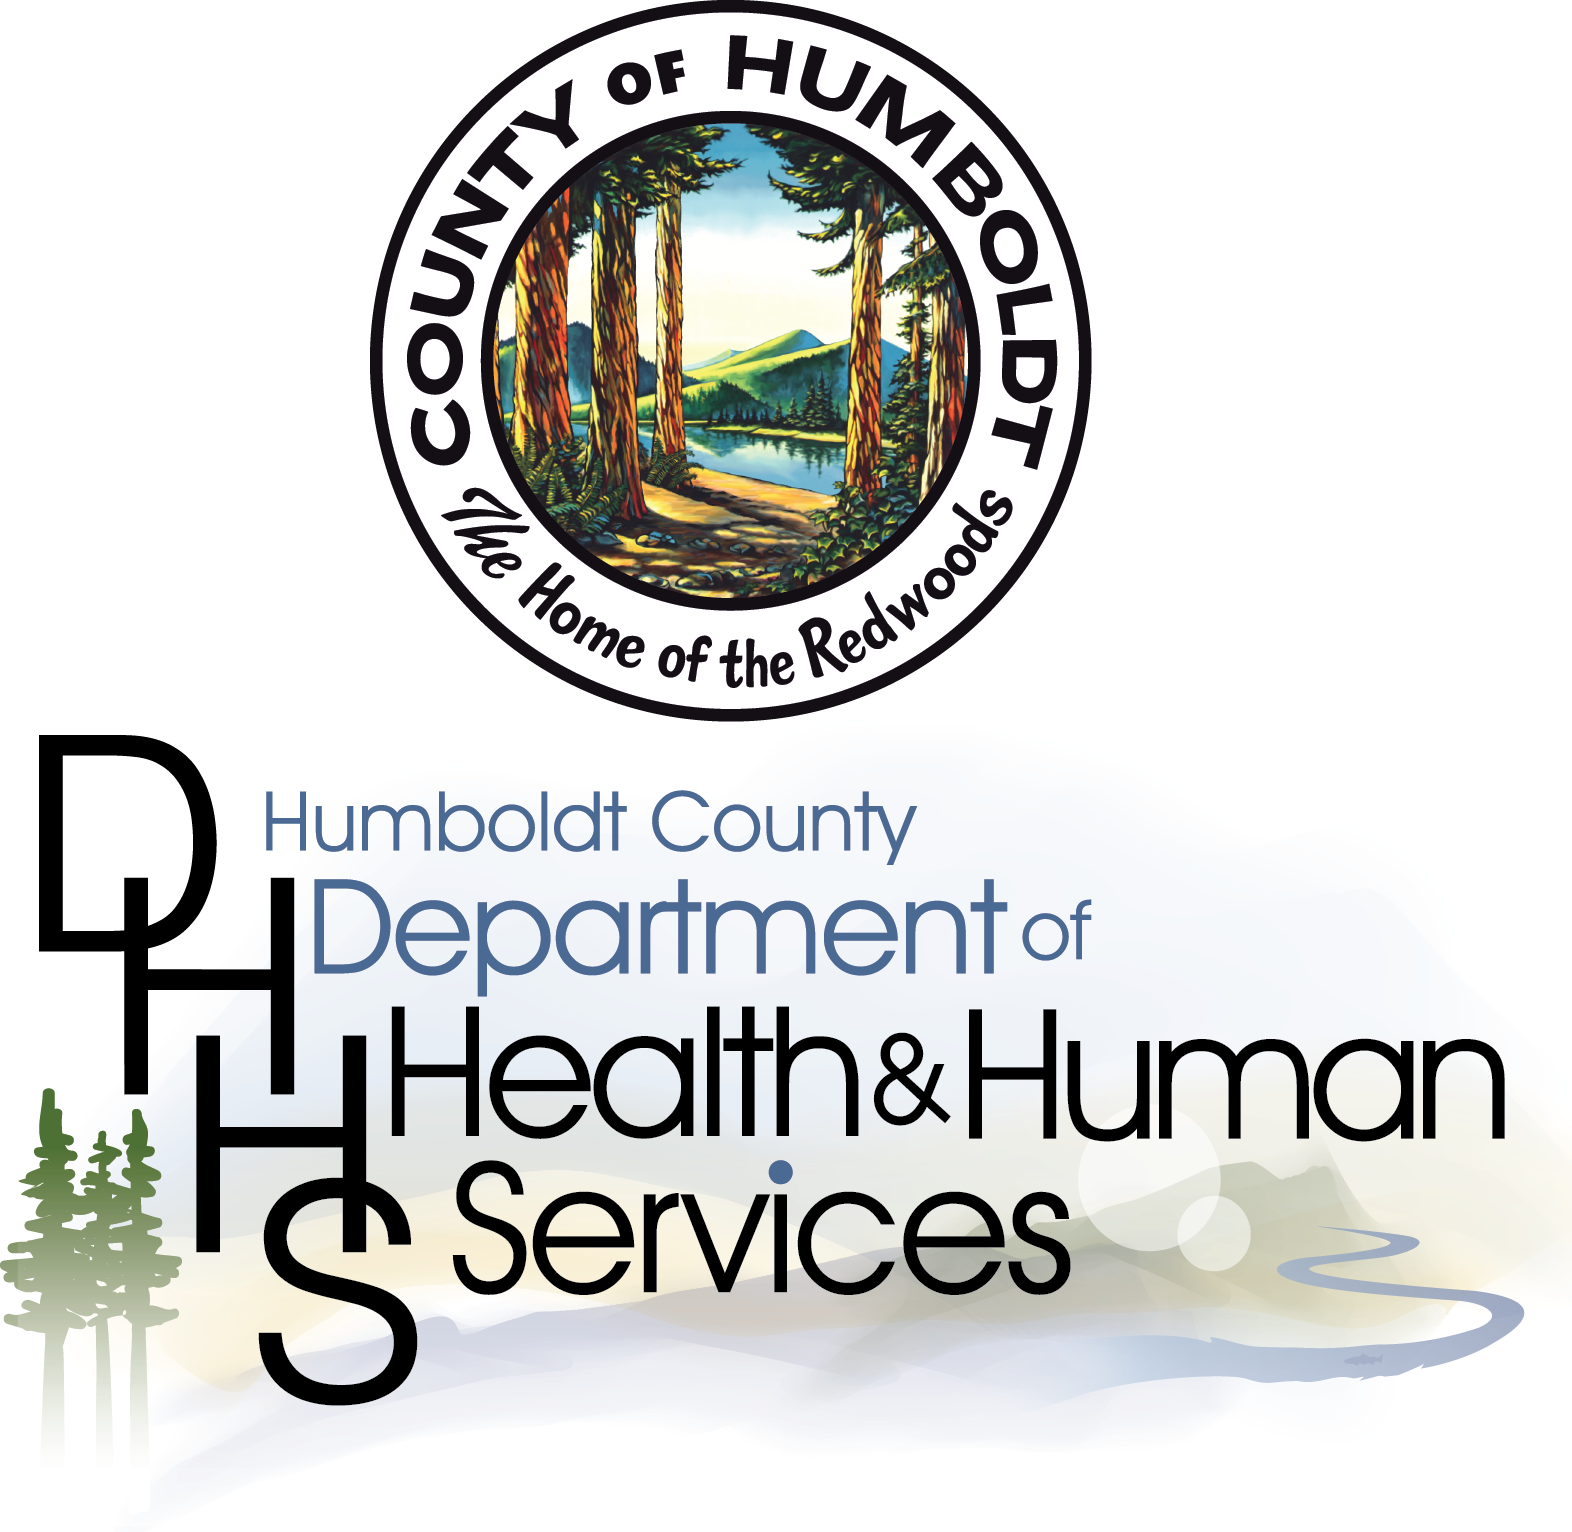 Human Services: Traveling Abroad This Summer? DHHS Will Shoot You Full Of